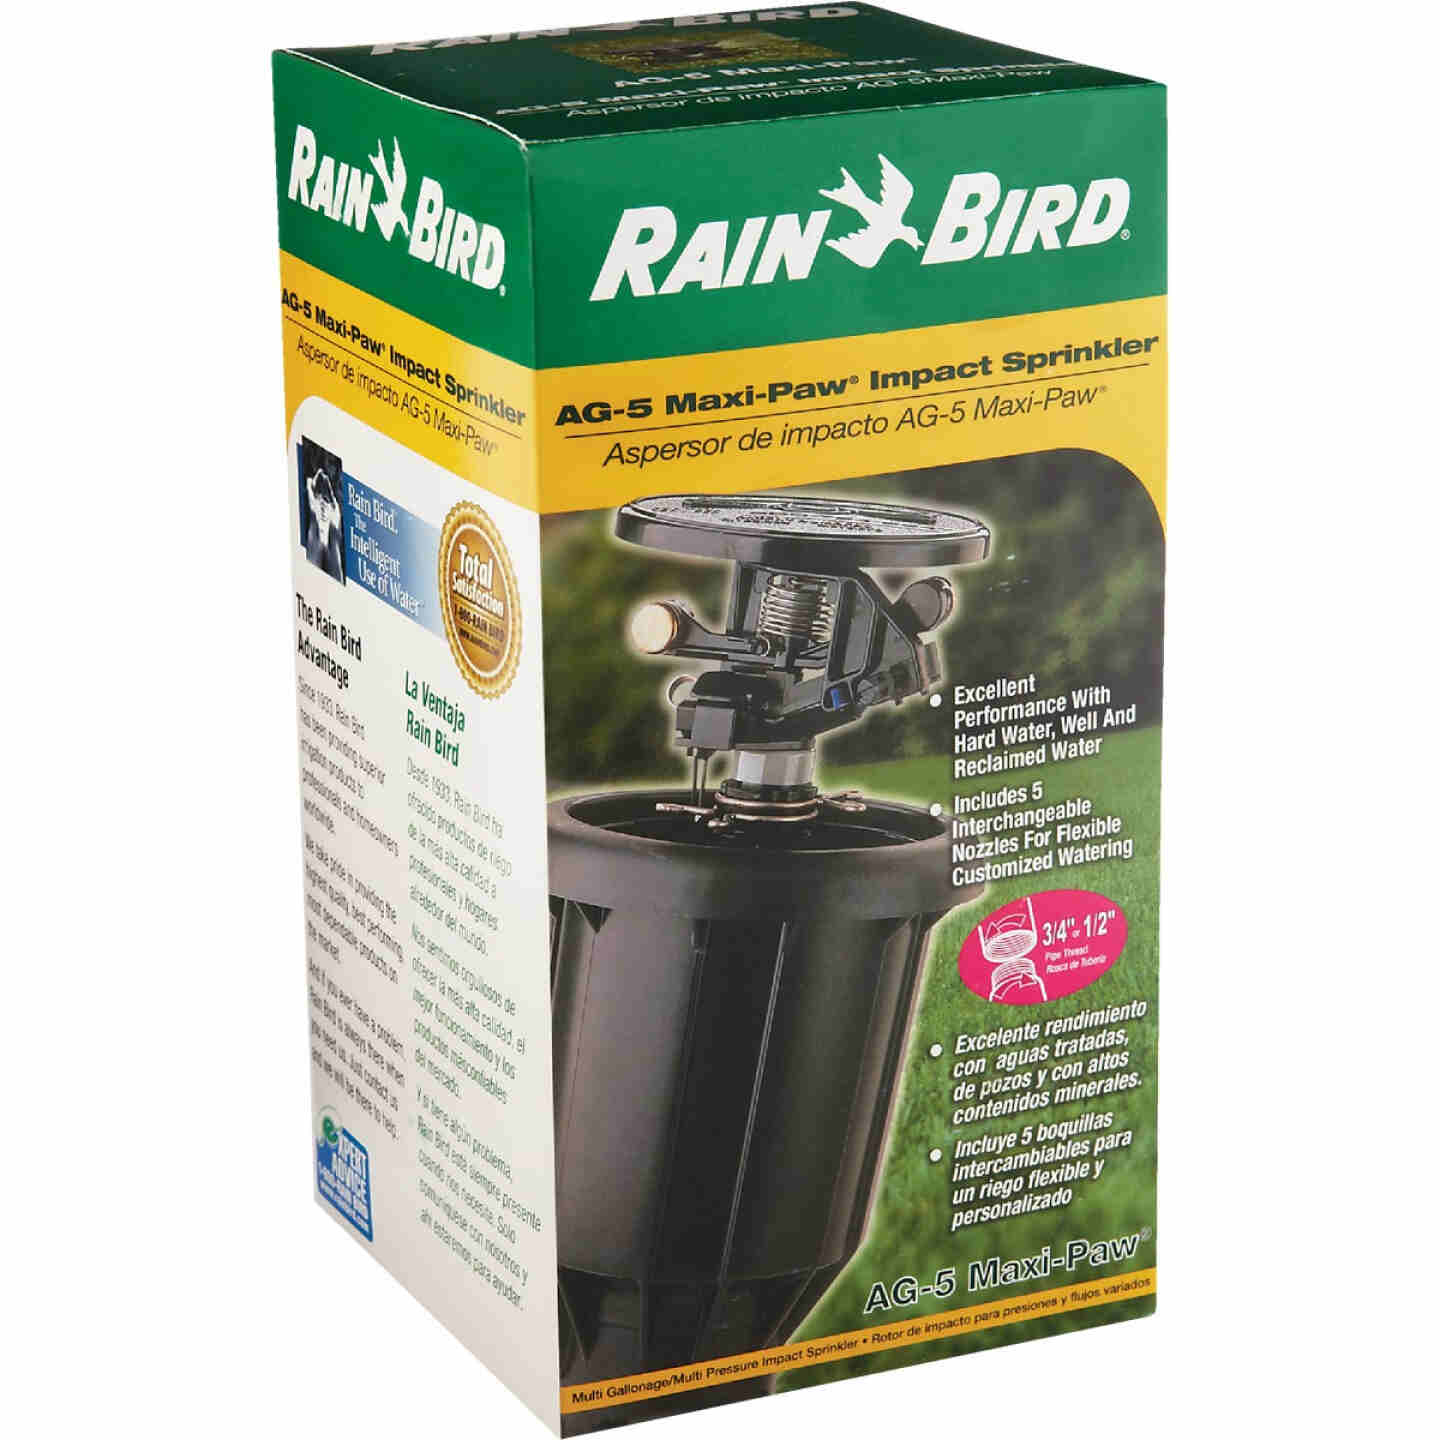 Rain Bird 3 In. Full or Partial Circle Deluxe Pop-Up Impact Head Sprinkler Image 2